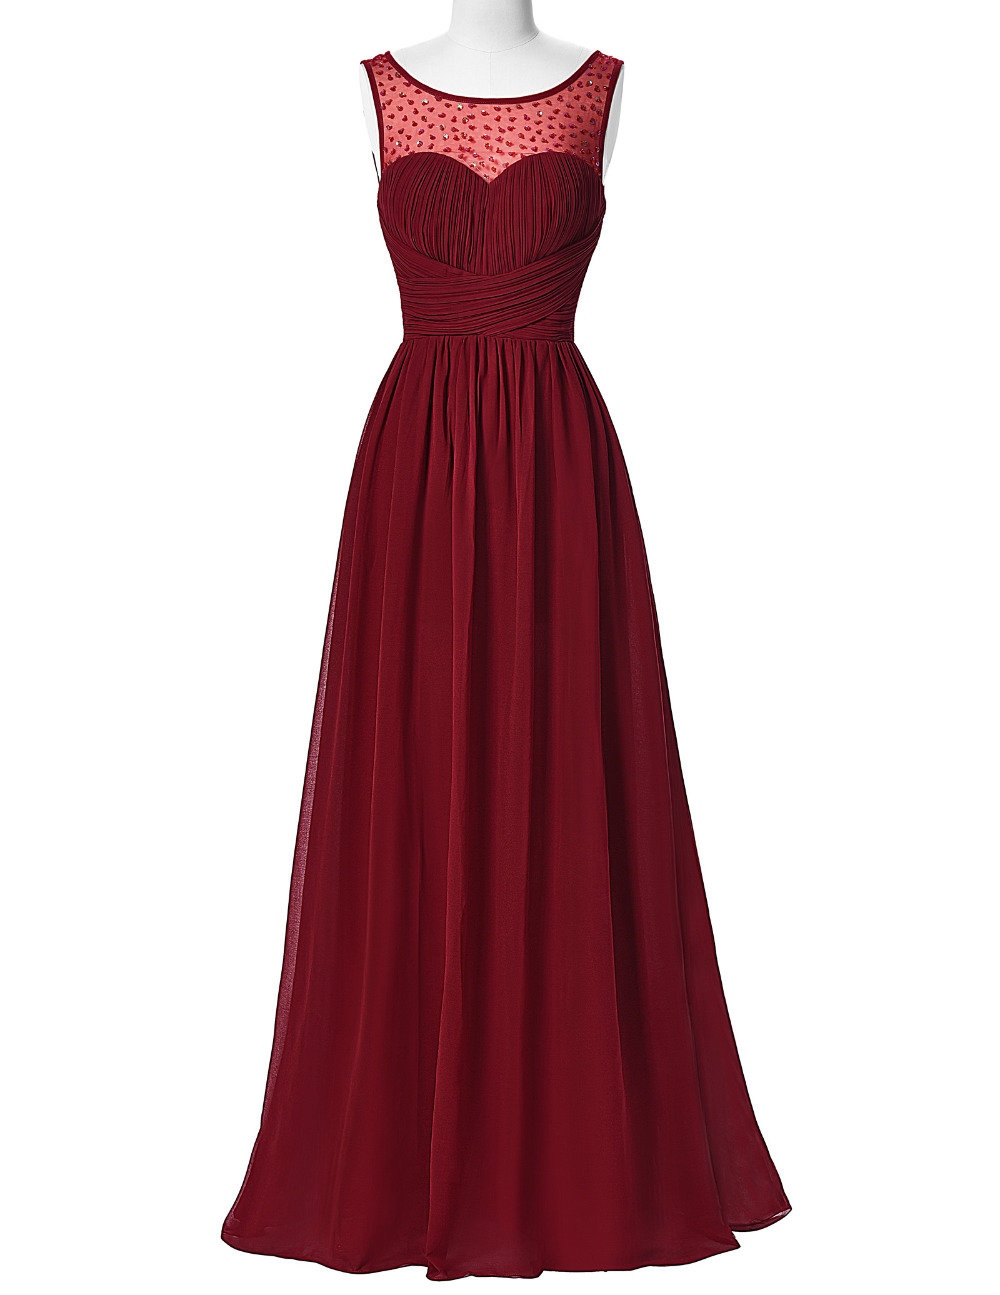 Hot Sell Long Burgundy Prom Dresses 2016 Sleeveless V-Back Chiffon Ombre Dress Strazz Ruched Wedding Dinner Dress Prom Gowns(China (Mainland))